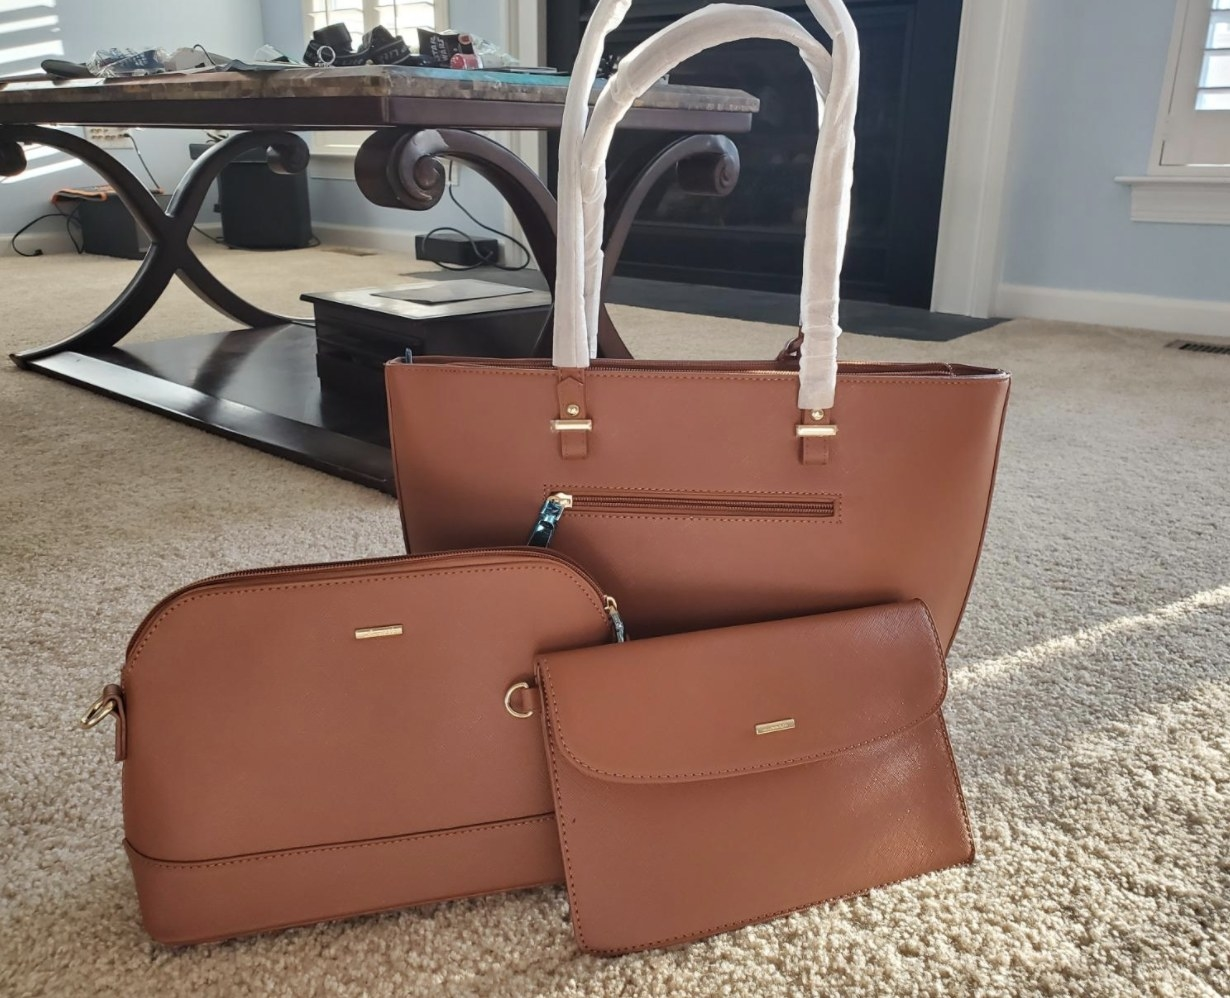 The bags in a tan brown color